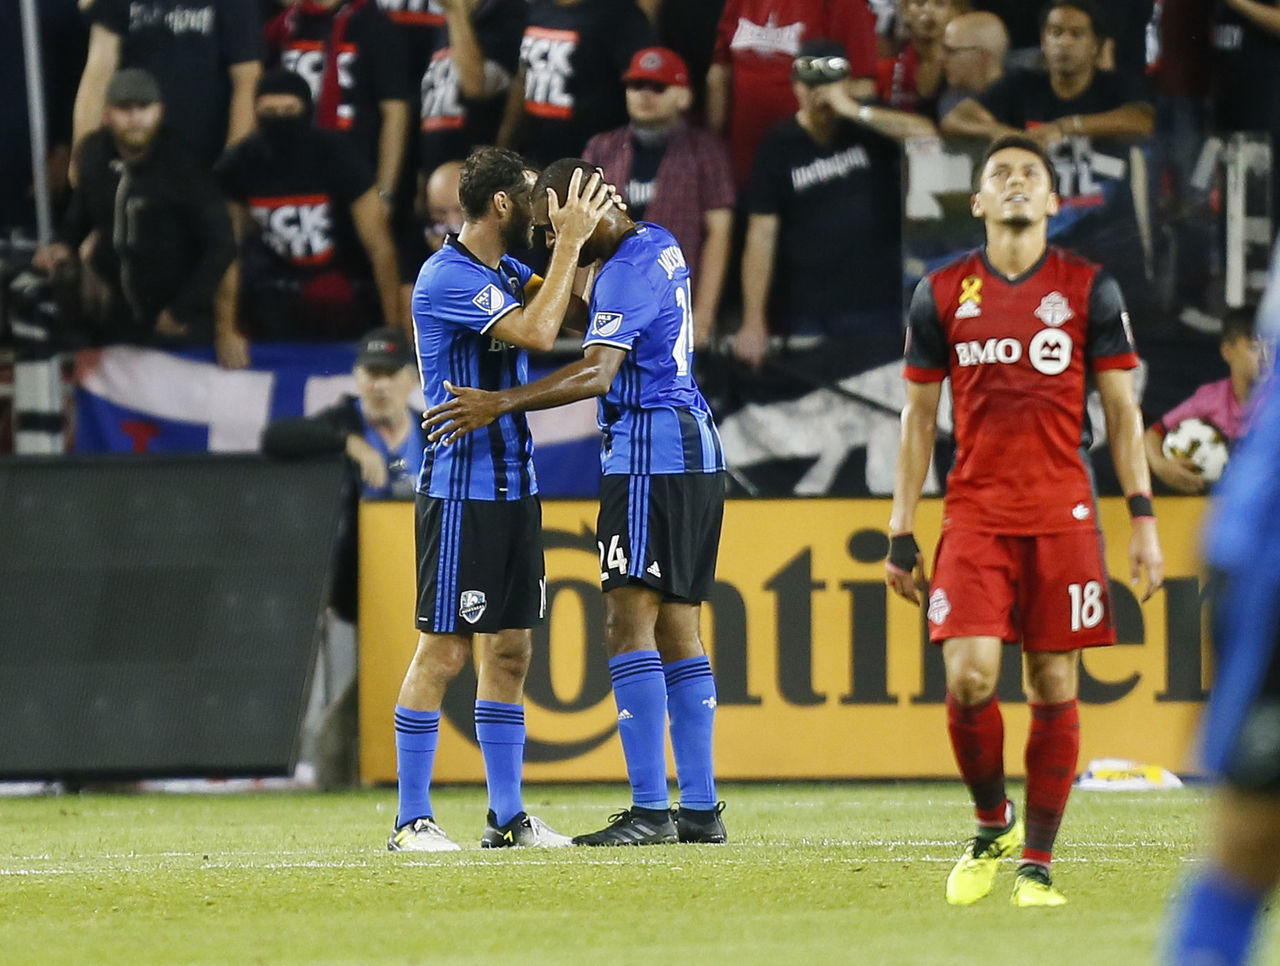 Cropped 2017 09 21t004344z 1896962311 nocid rtrmadp 3 mls montreal impact at toronto fc